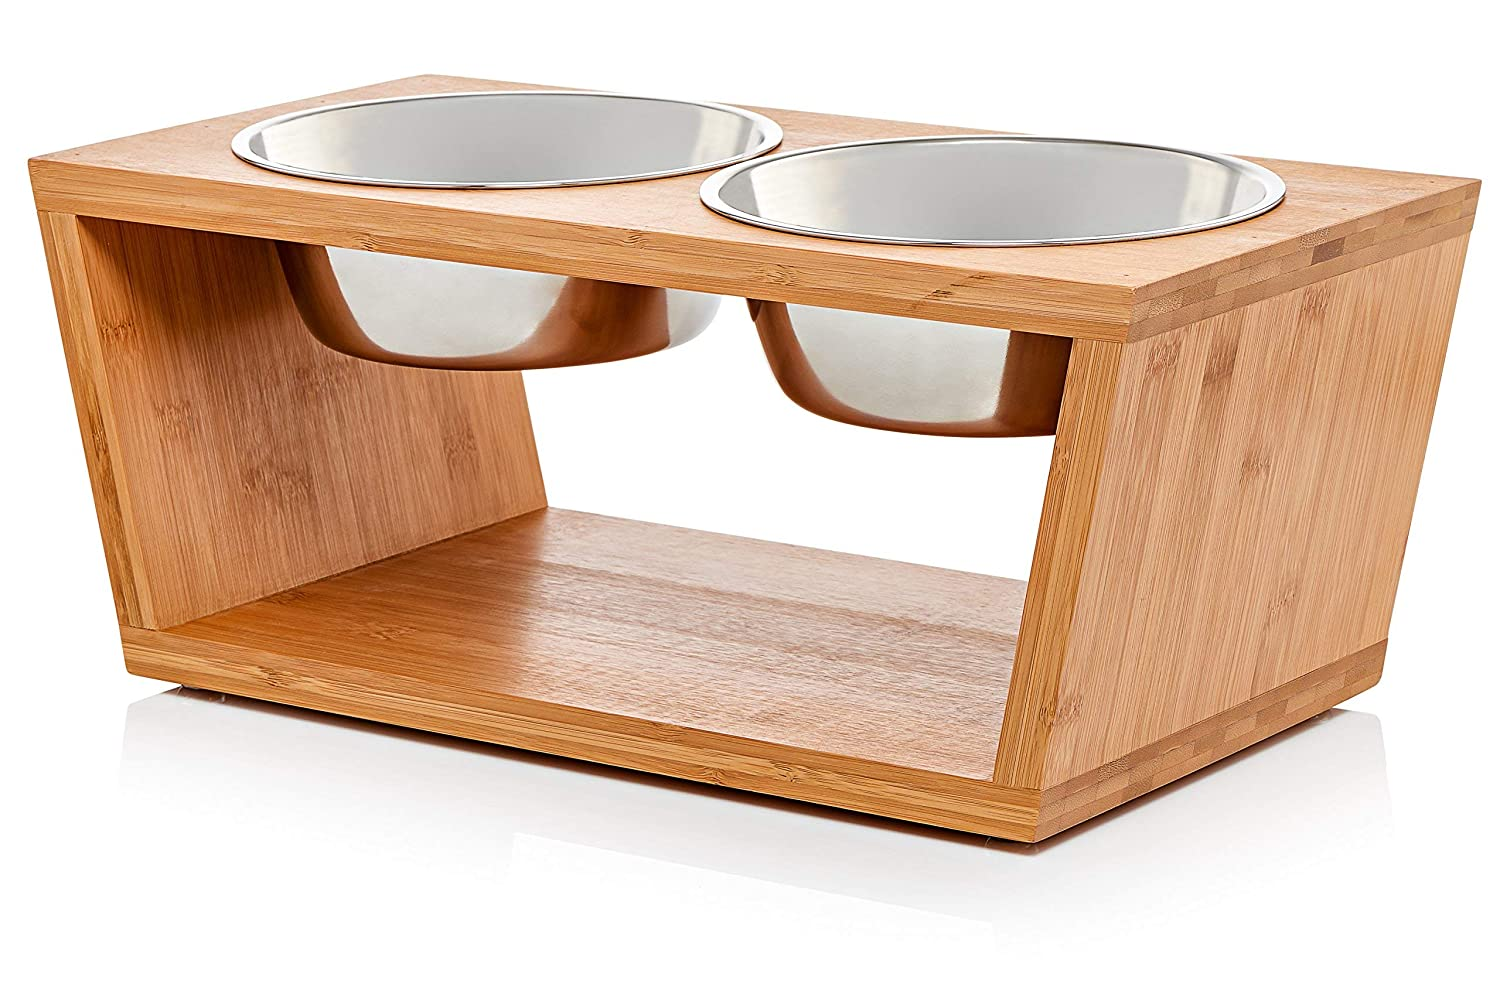 "Premium 7"" Elevated Dog and Cat Pet Feeder, Double Bowl Raised Stand Comes with Extra Two Stainless Steel Bowls. Perfect for Dogs and Cats."